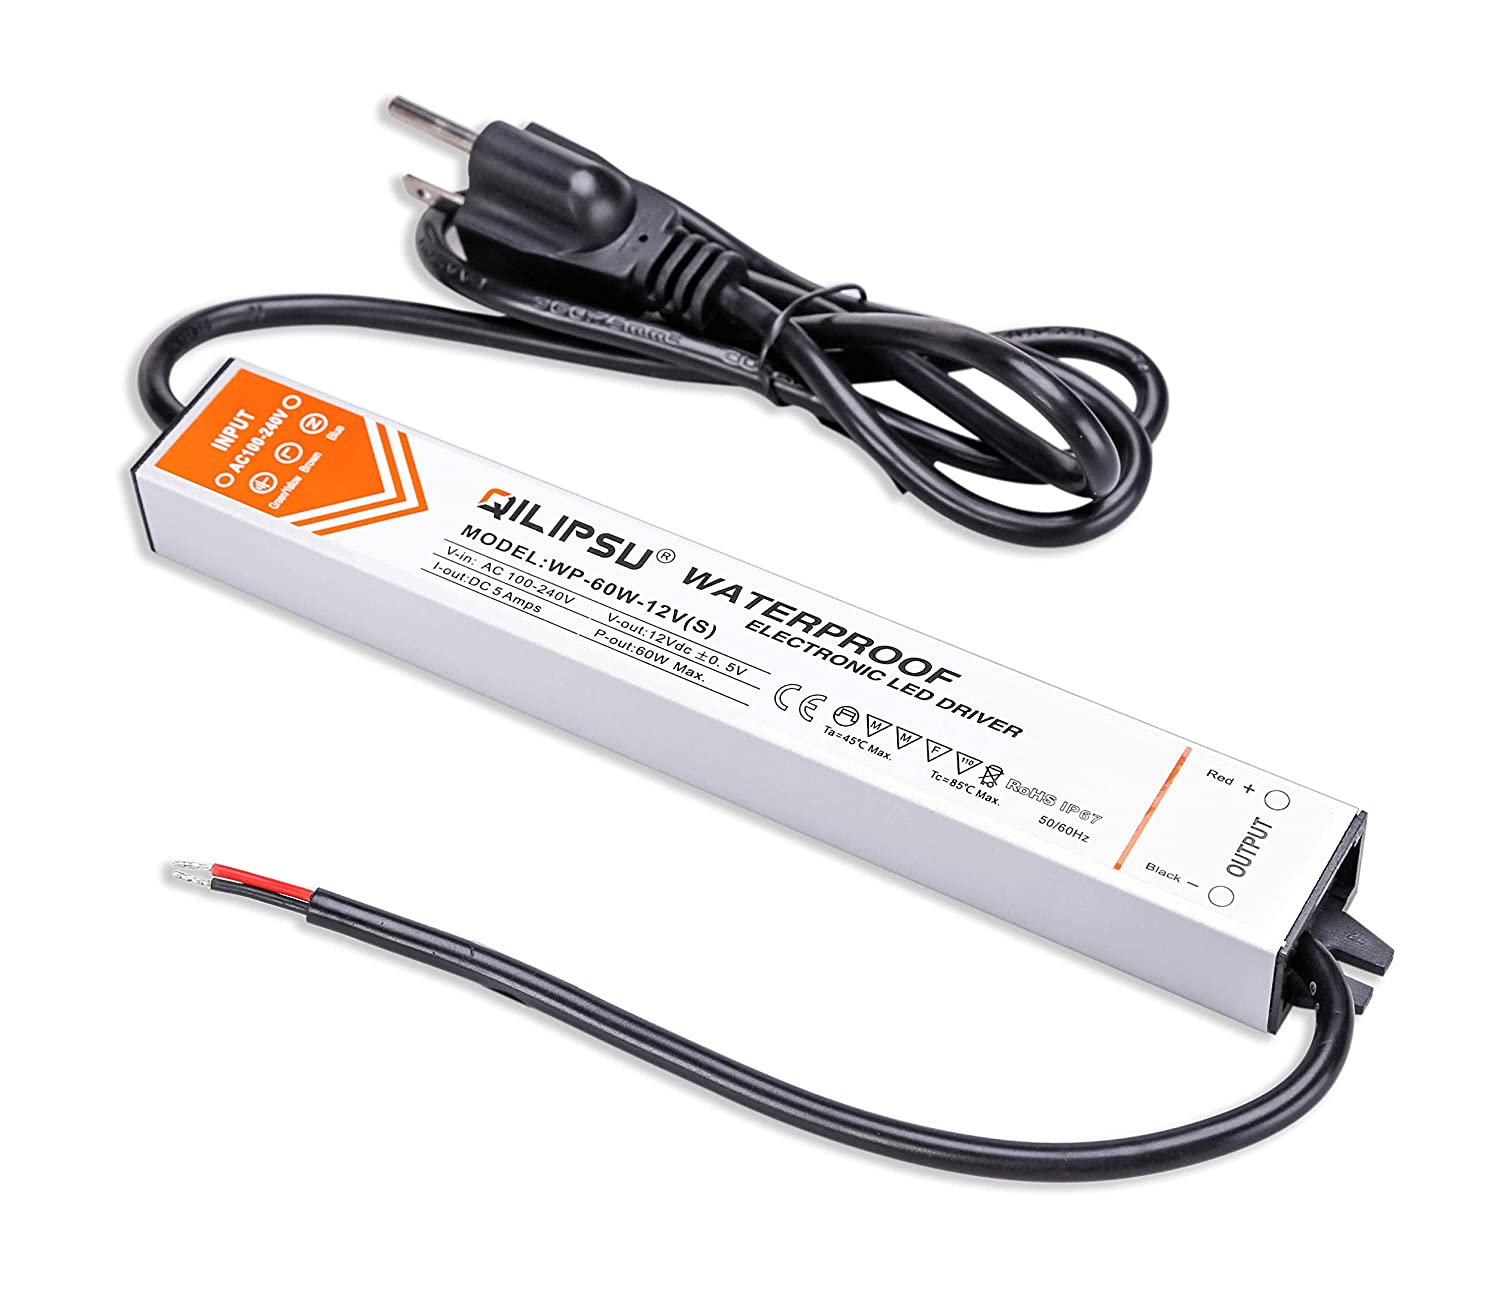 Qili Power Wiring Diagram Libraries Laptop Supply Schematic Likewise Simple Inverter Circuit Libraryqilipsu 30w 12v Led Driver Ip67 Waterproof